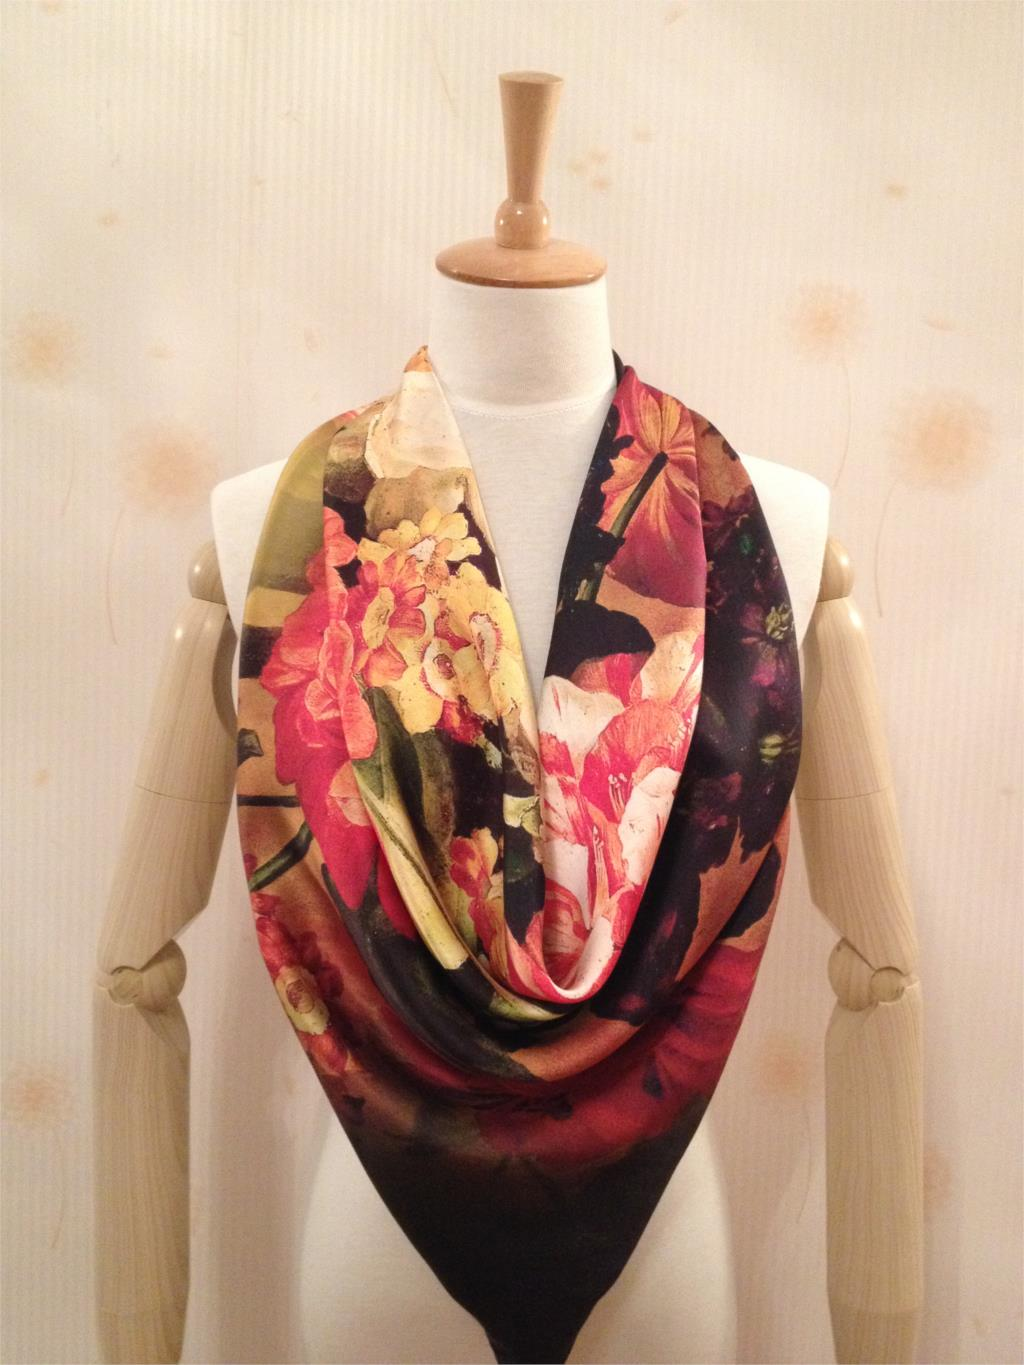 FREE SHIPPING!2015 NEW ARRIVE FISHION SHINING SOFT SQUARE FLORAL PASHMINA SILK SCARF WOMEN GIFT(China (Mainland))